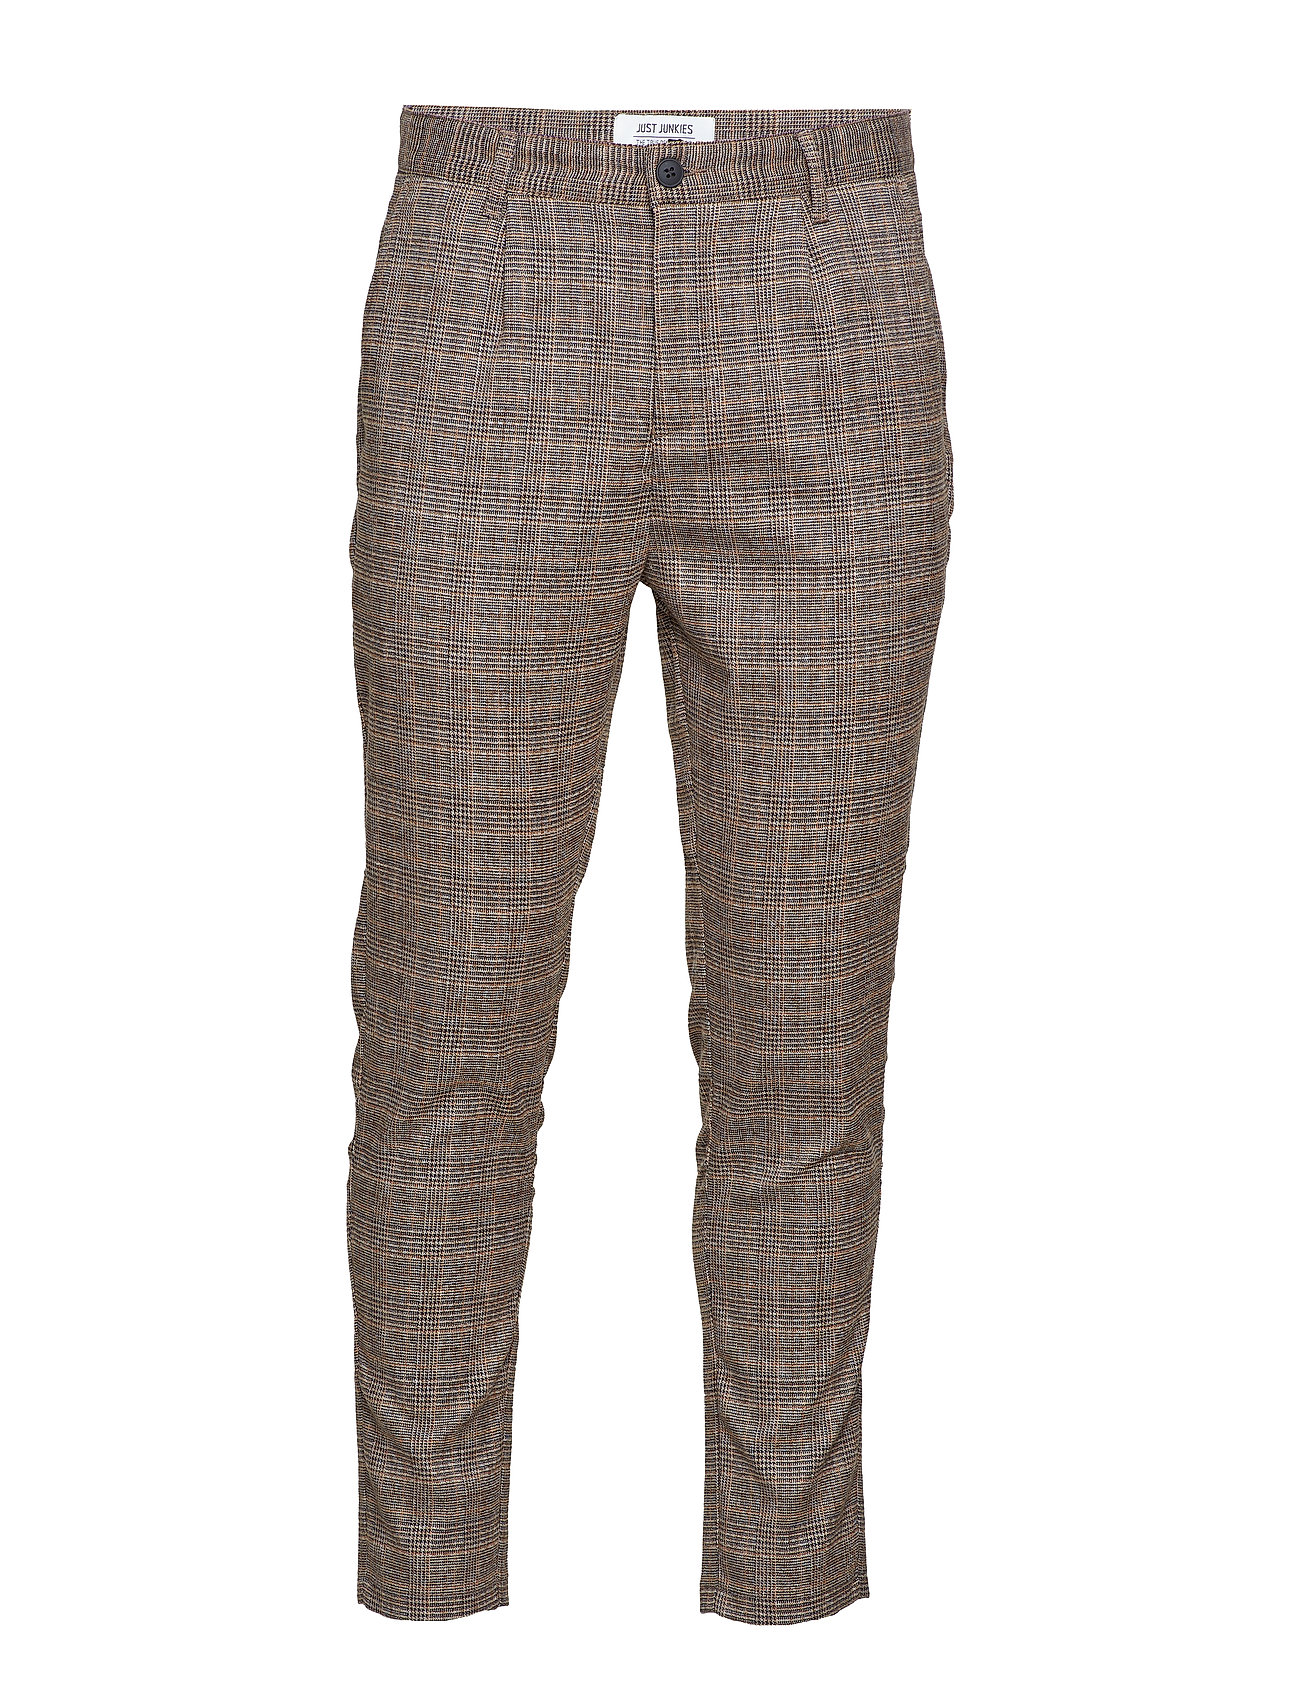 Linus Slim Check Pants - Just Junkies